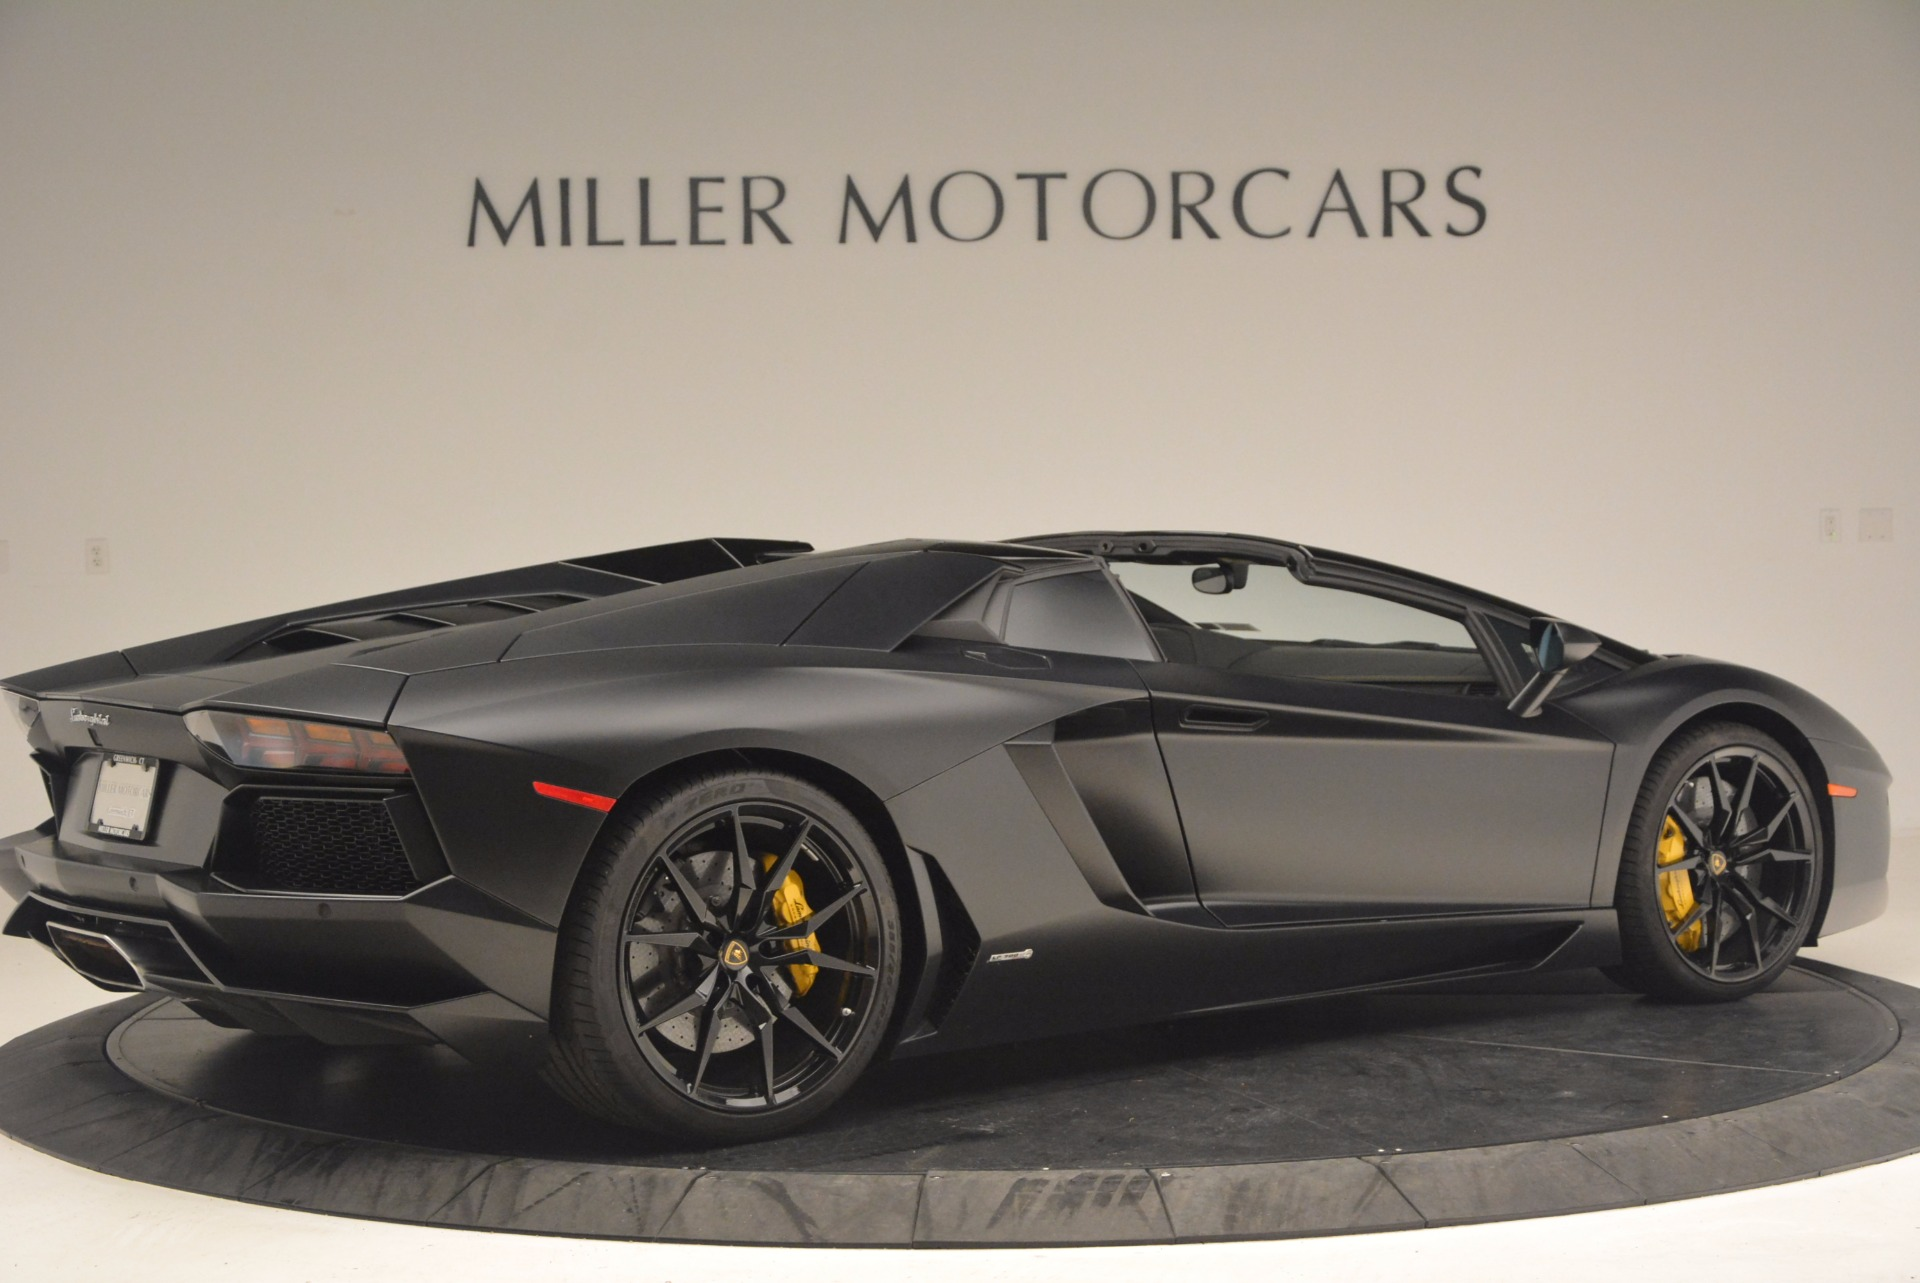 sale lamborghini gallardo spyder for kms e cars prices on jamesedition gear used